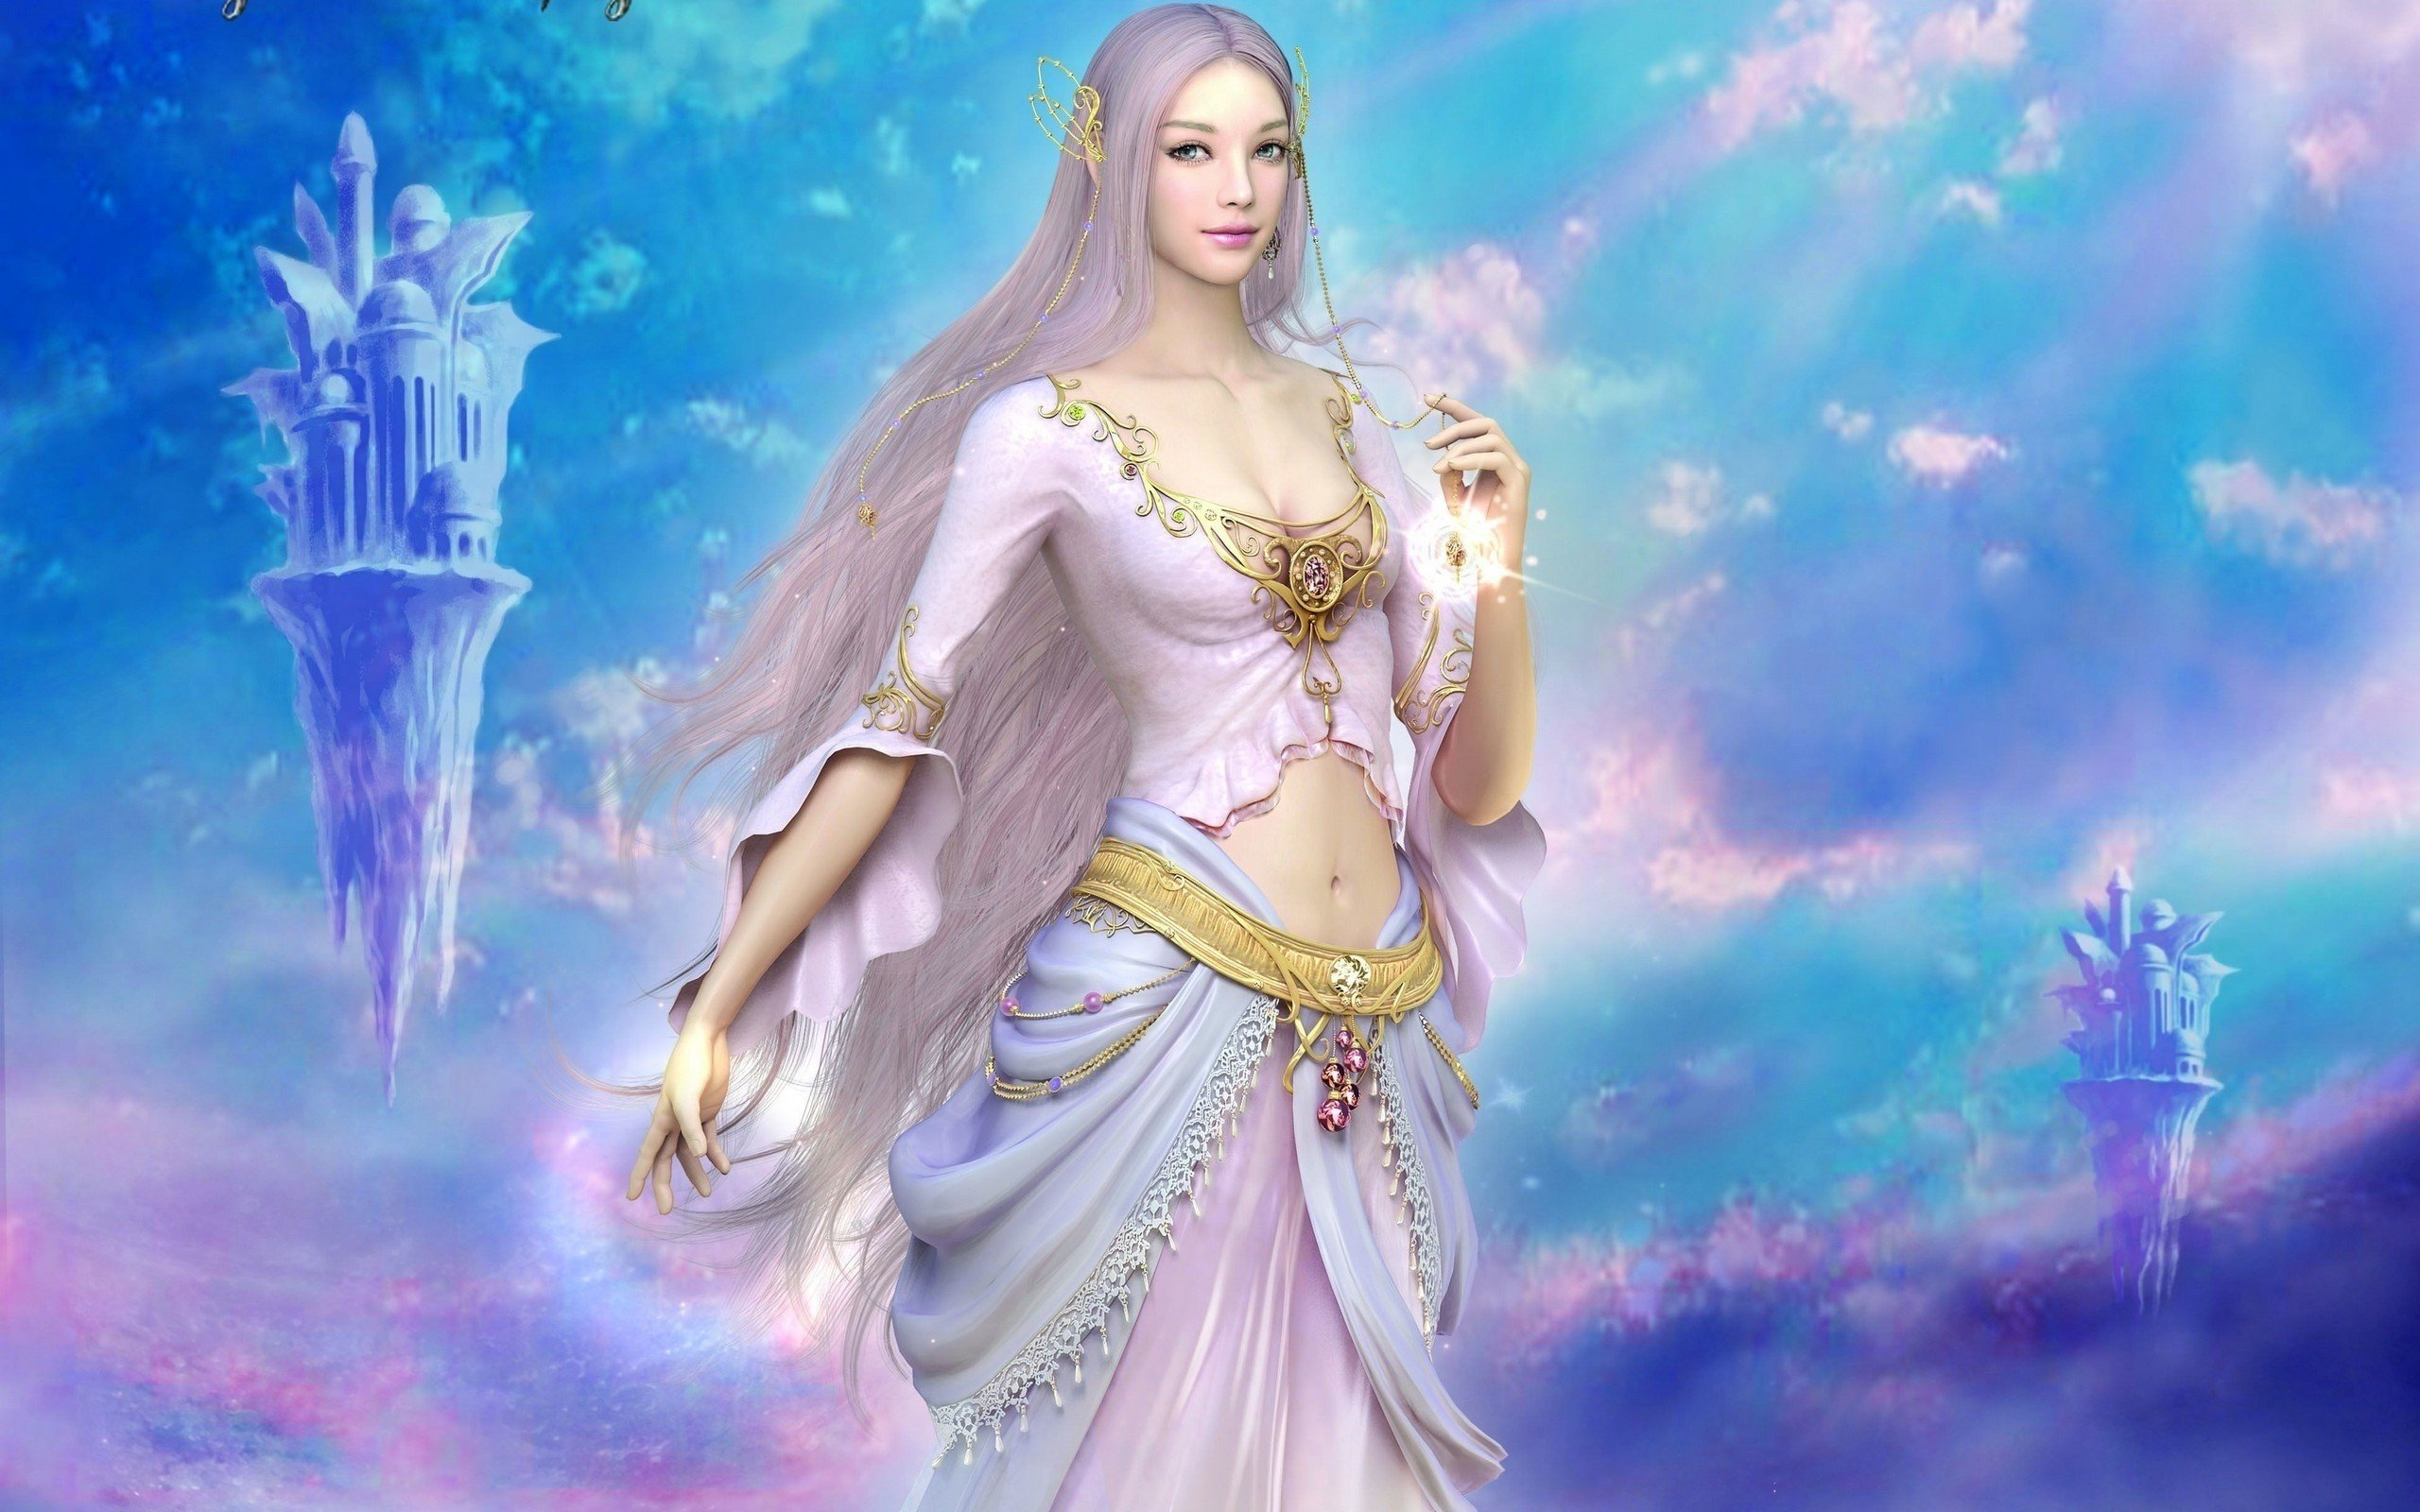 Goddess of Light 3d art blue fantasy goddess of light 2560x1600